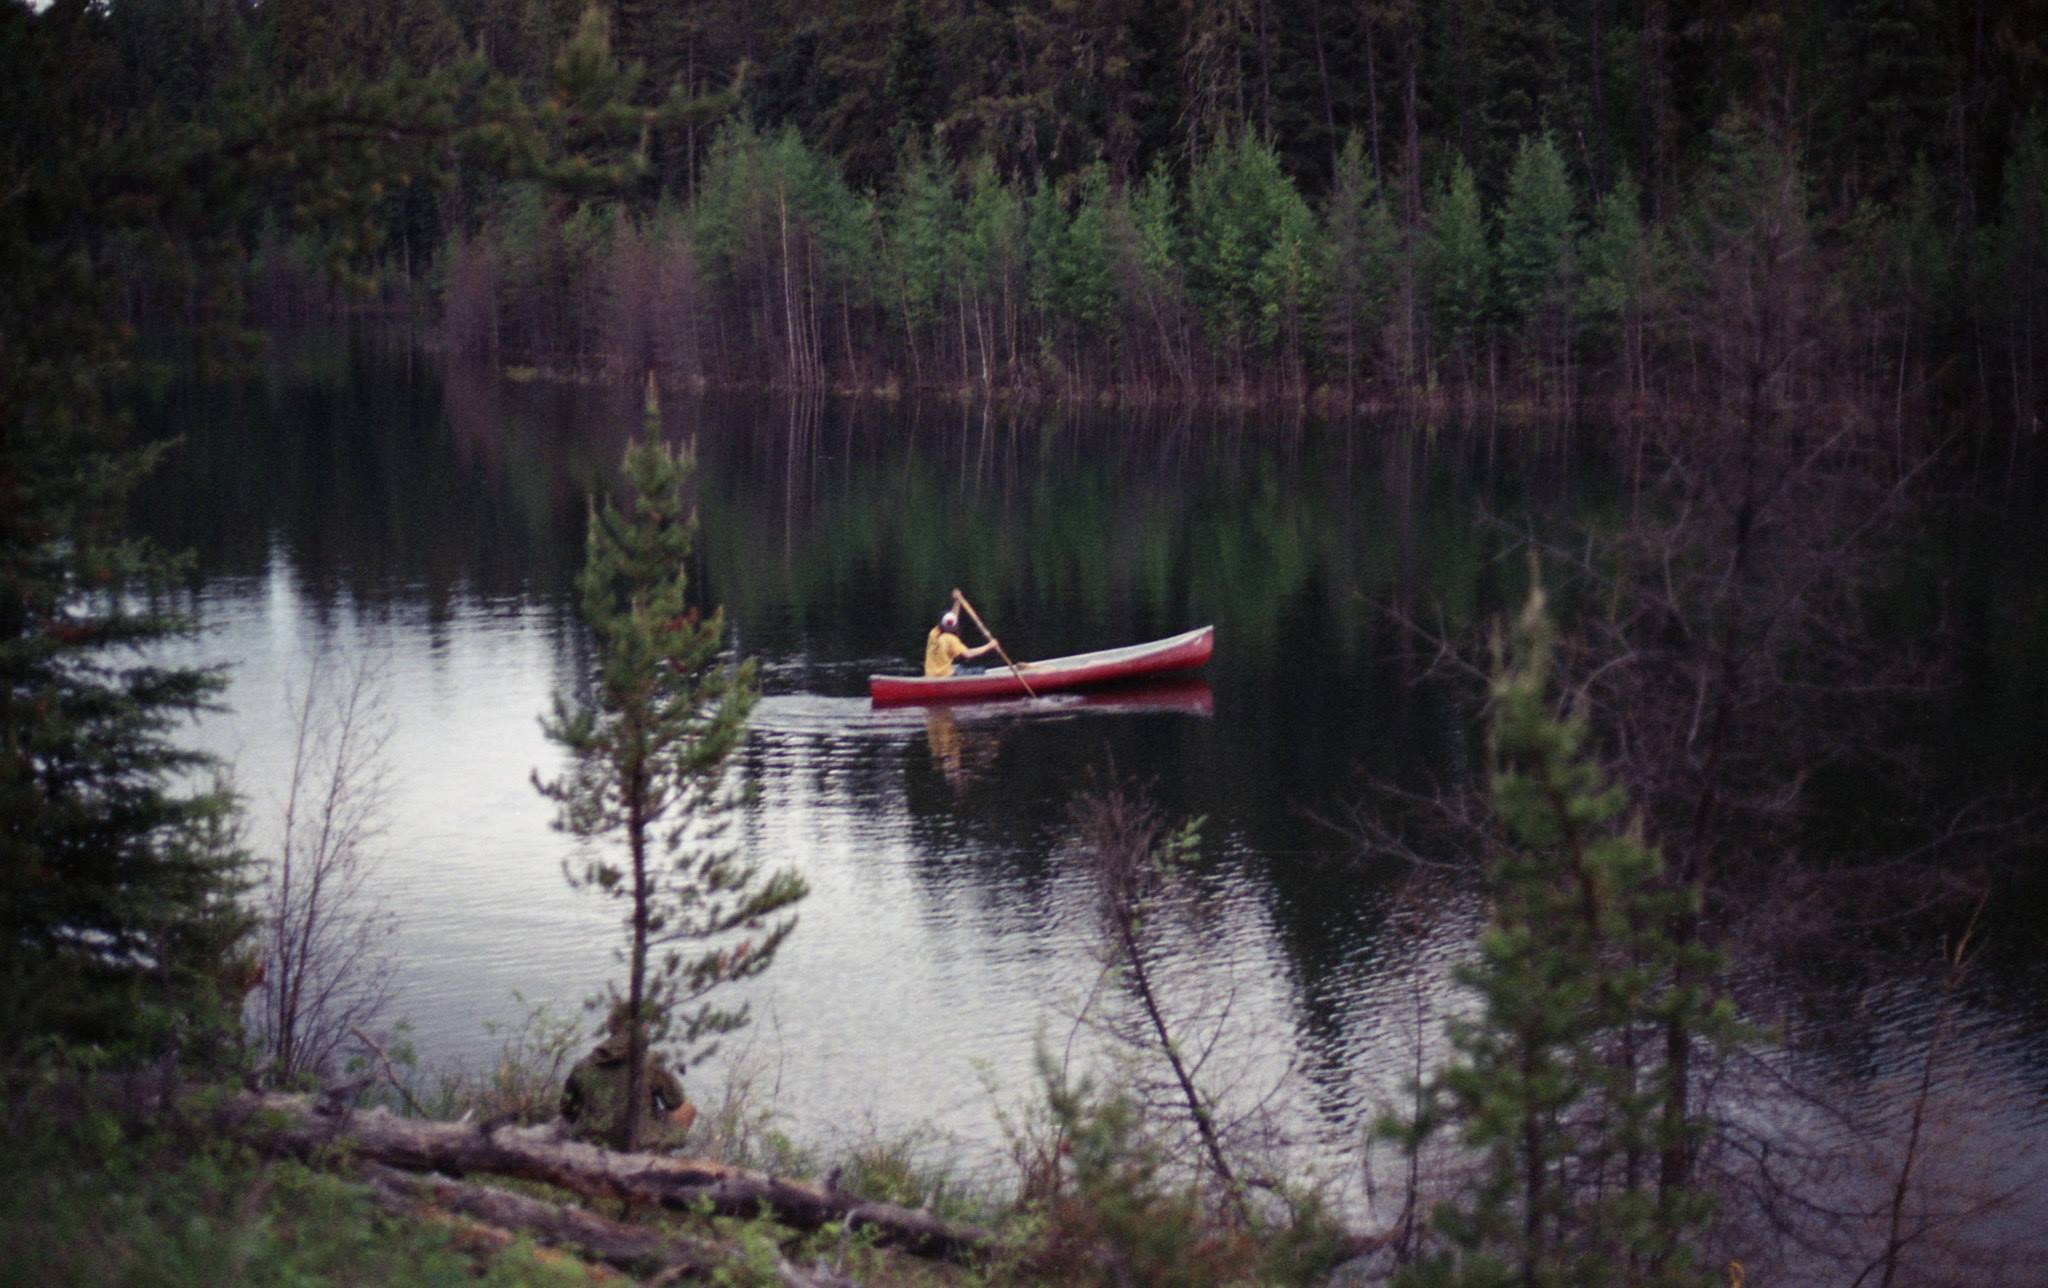 Canoeing on Diamond Lake